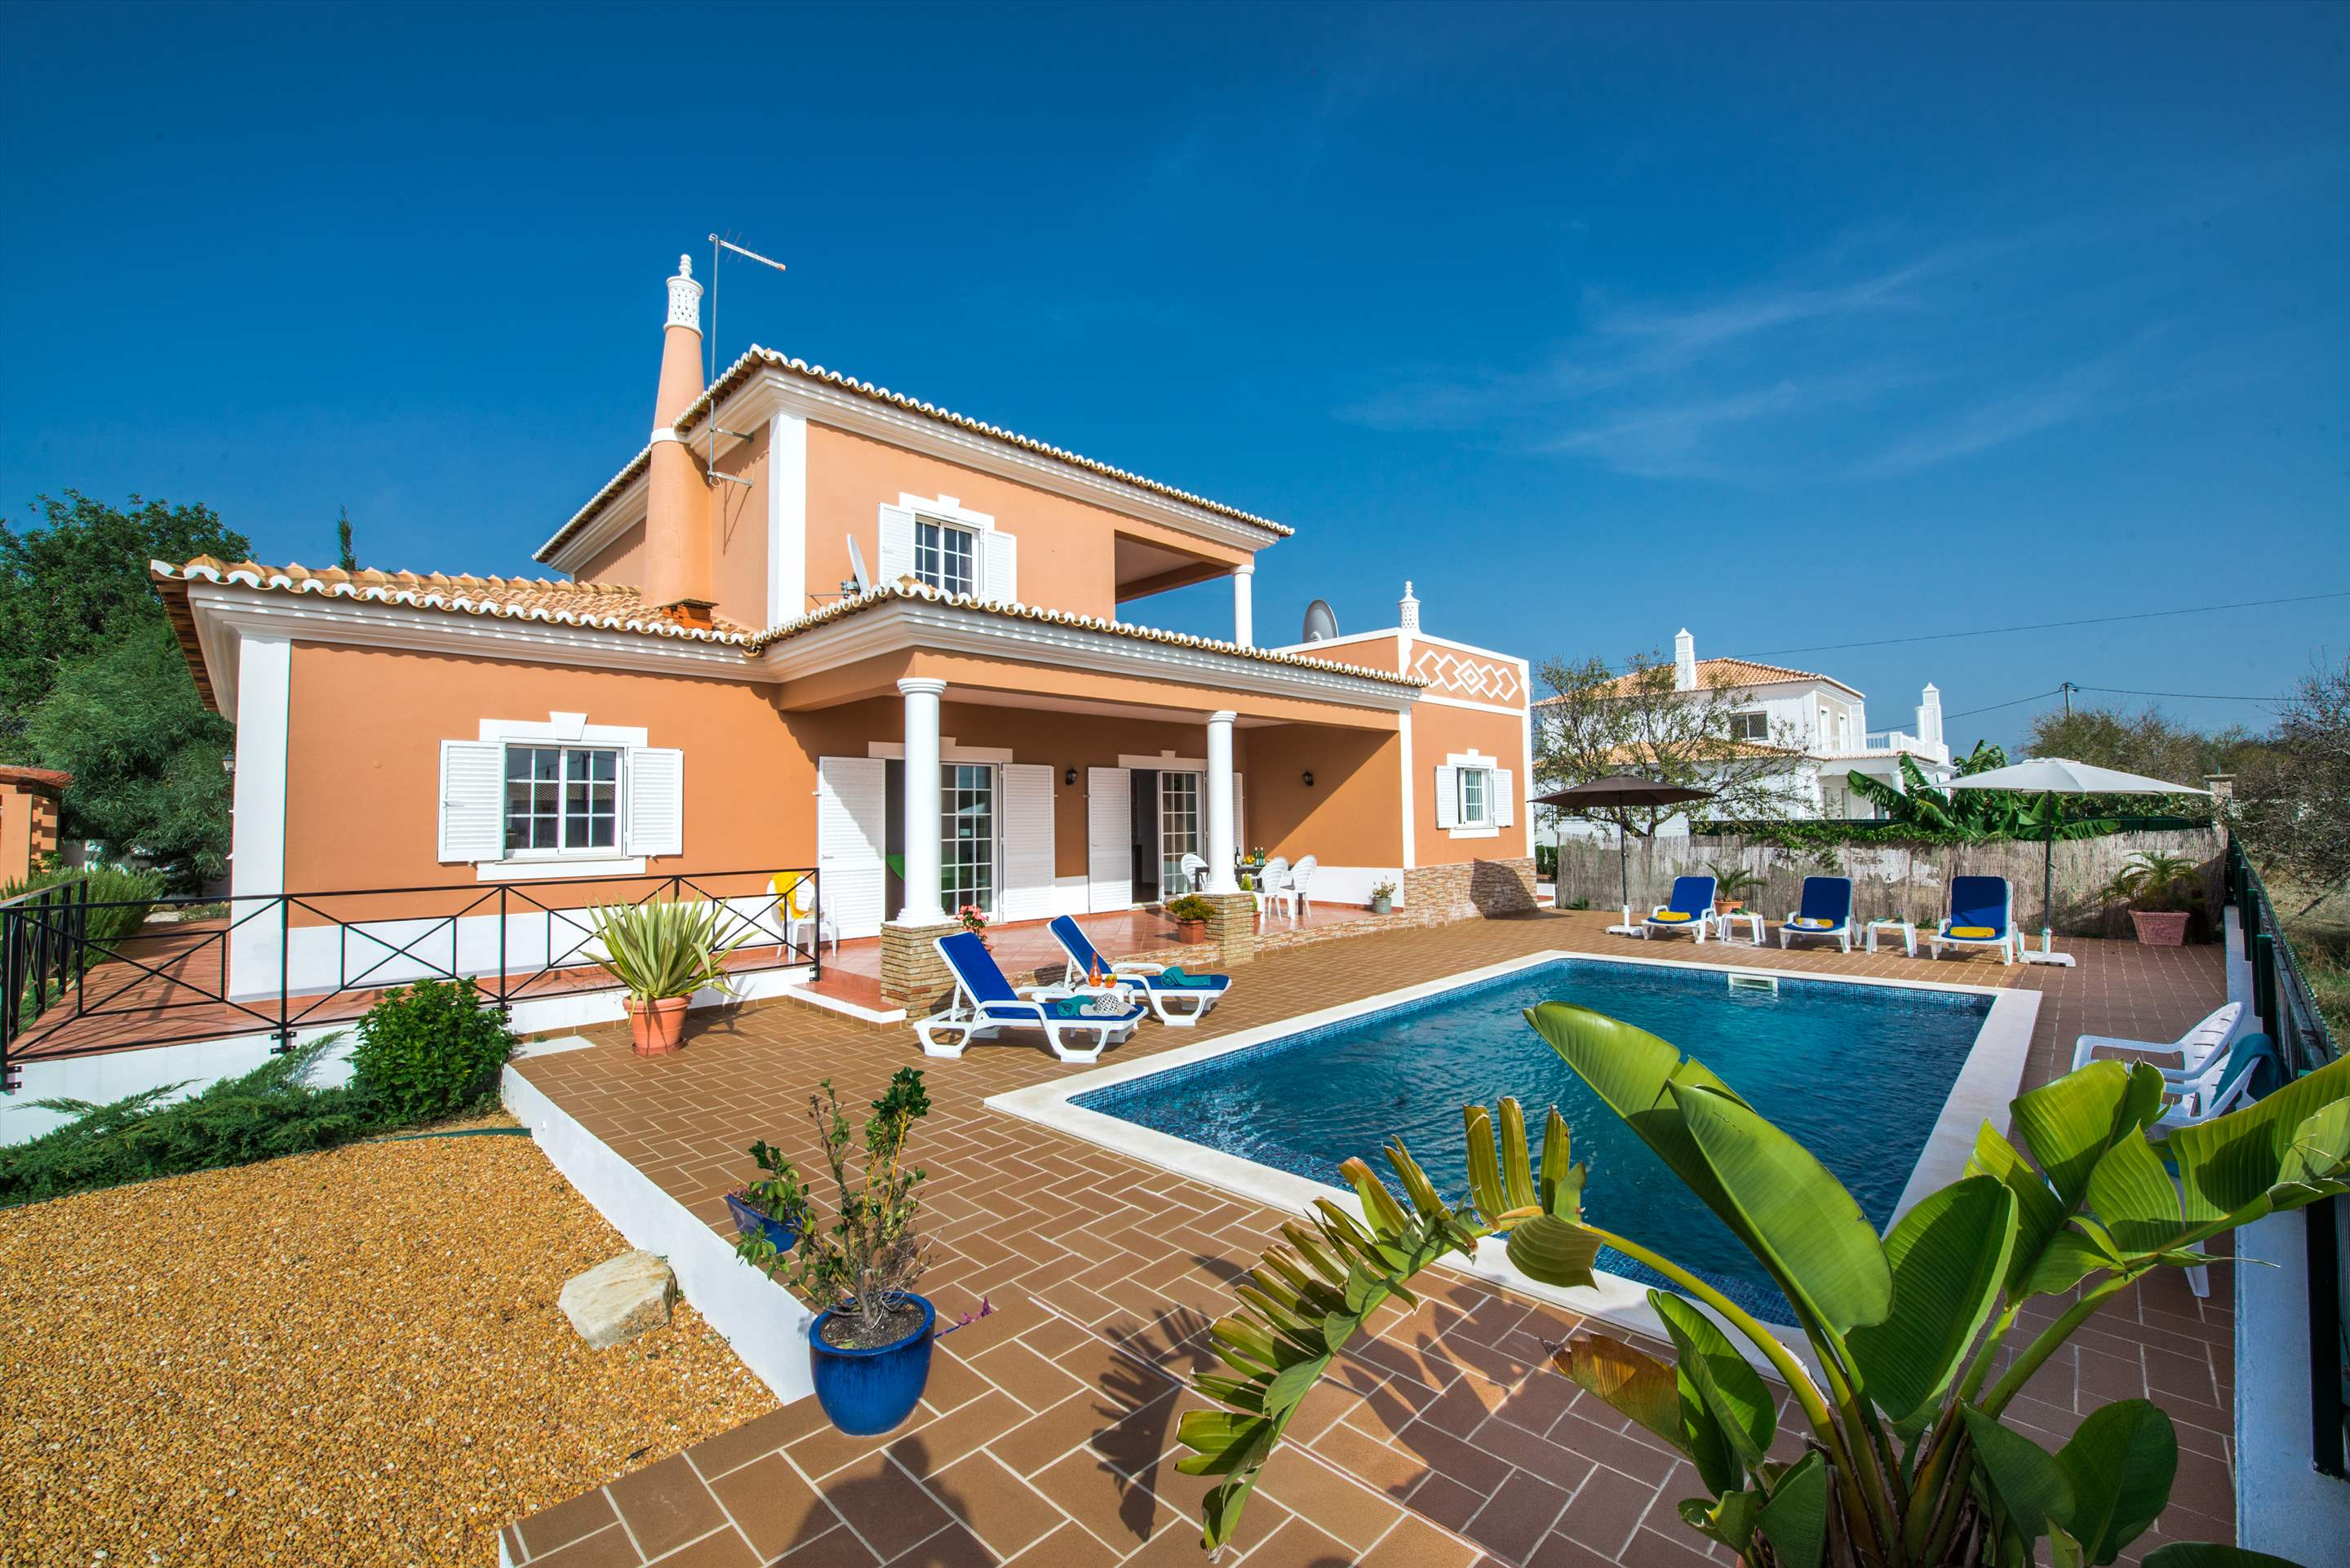 Casa Laura, 3 bedroom villa in Gale, Vale da Parra and Guia, Algarve